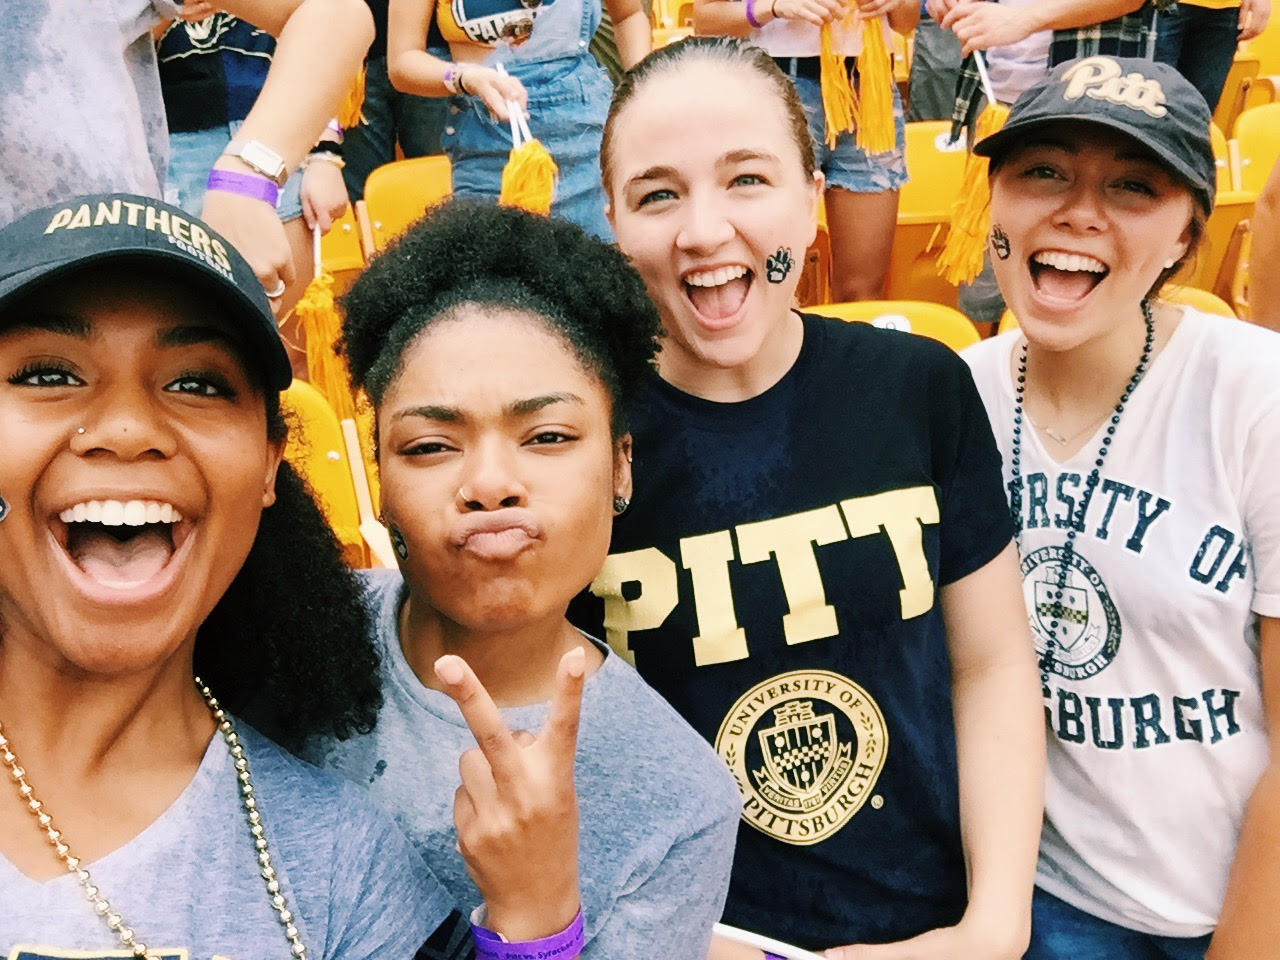 Morgan (far right) is thriving after high school in her junior year at Pitt.